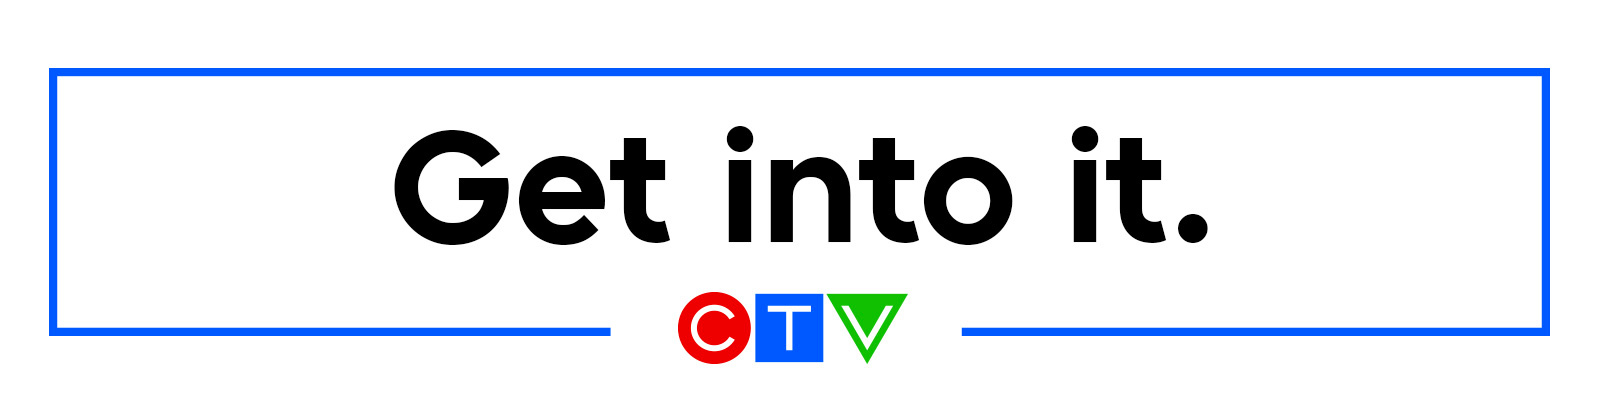 New Logo and On-air Look for CTV done In-house